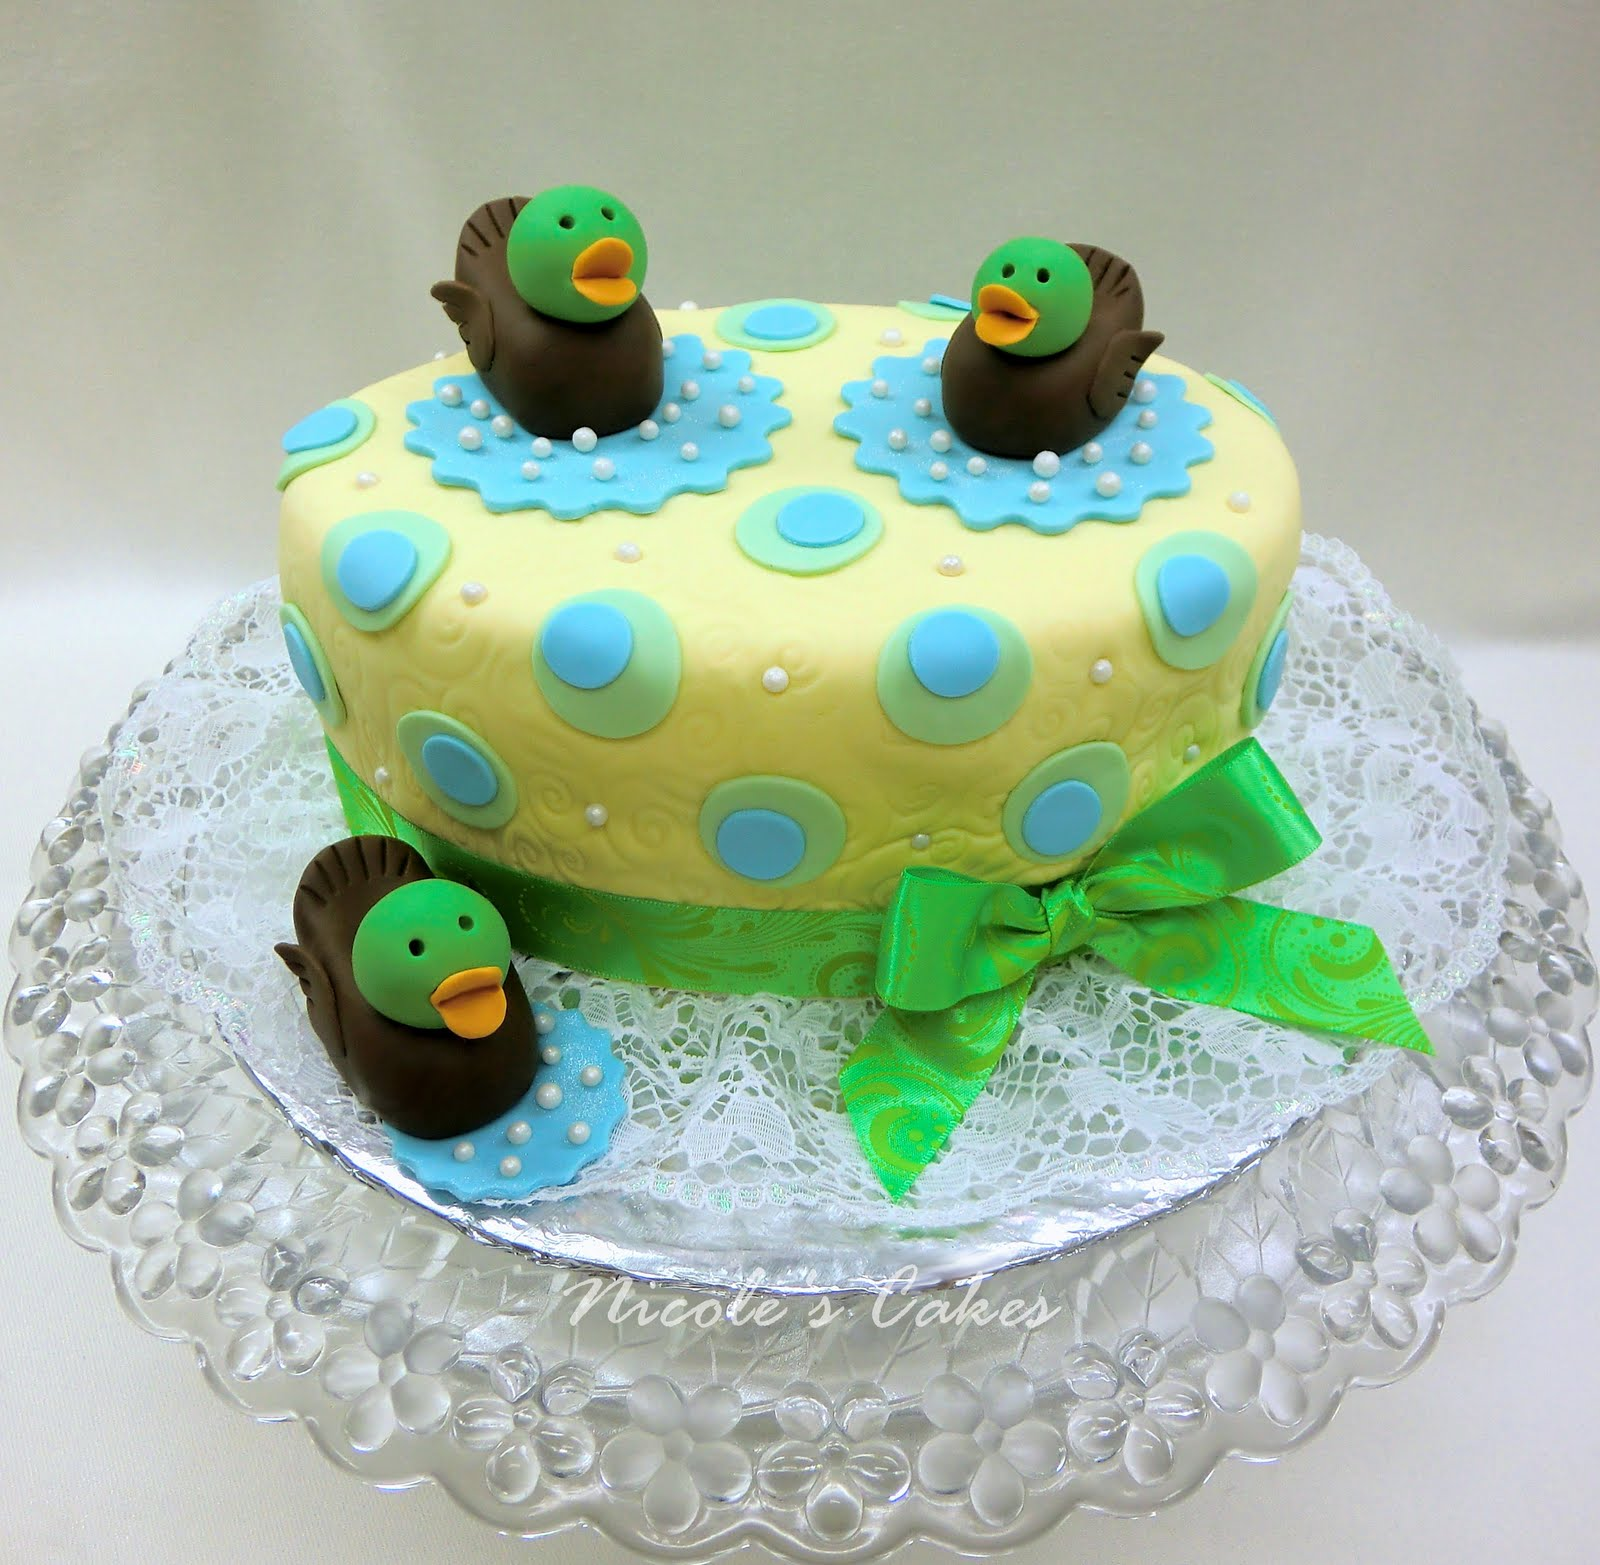 Confections, Cakes & Creations!: 'Just Ducky!'... A Baby Shower Cake